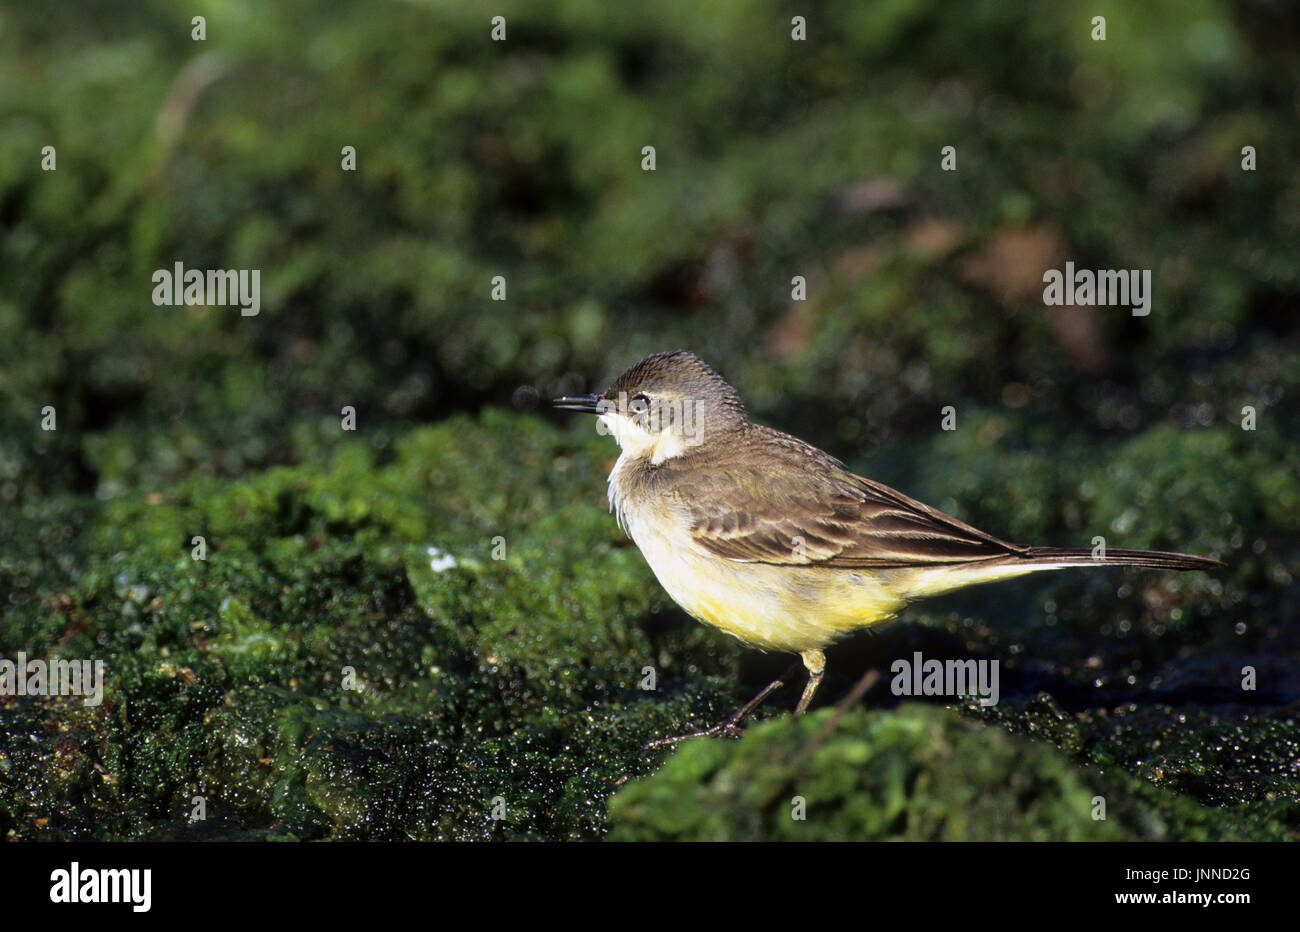 Black-headed Yellow Wagtail female (Motacilla flava feldegg) Tsiknias River Lesvos Greece - Stock Image